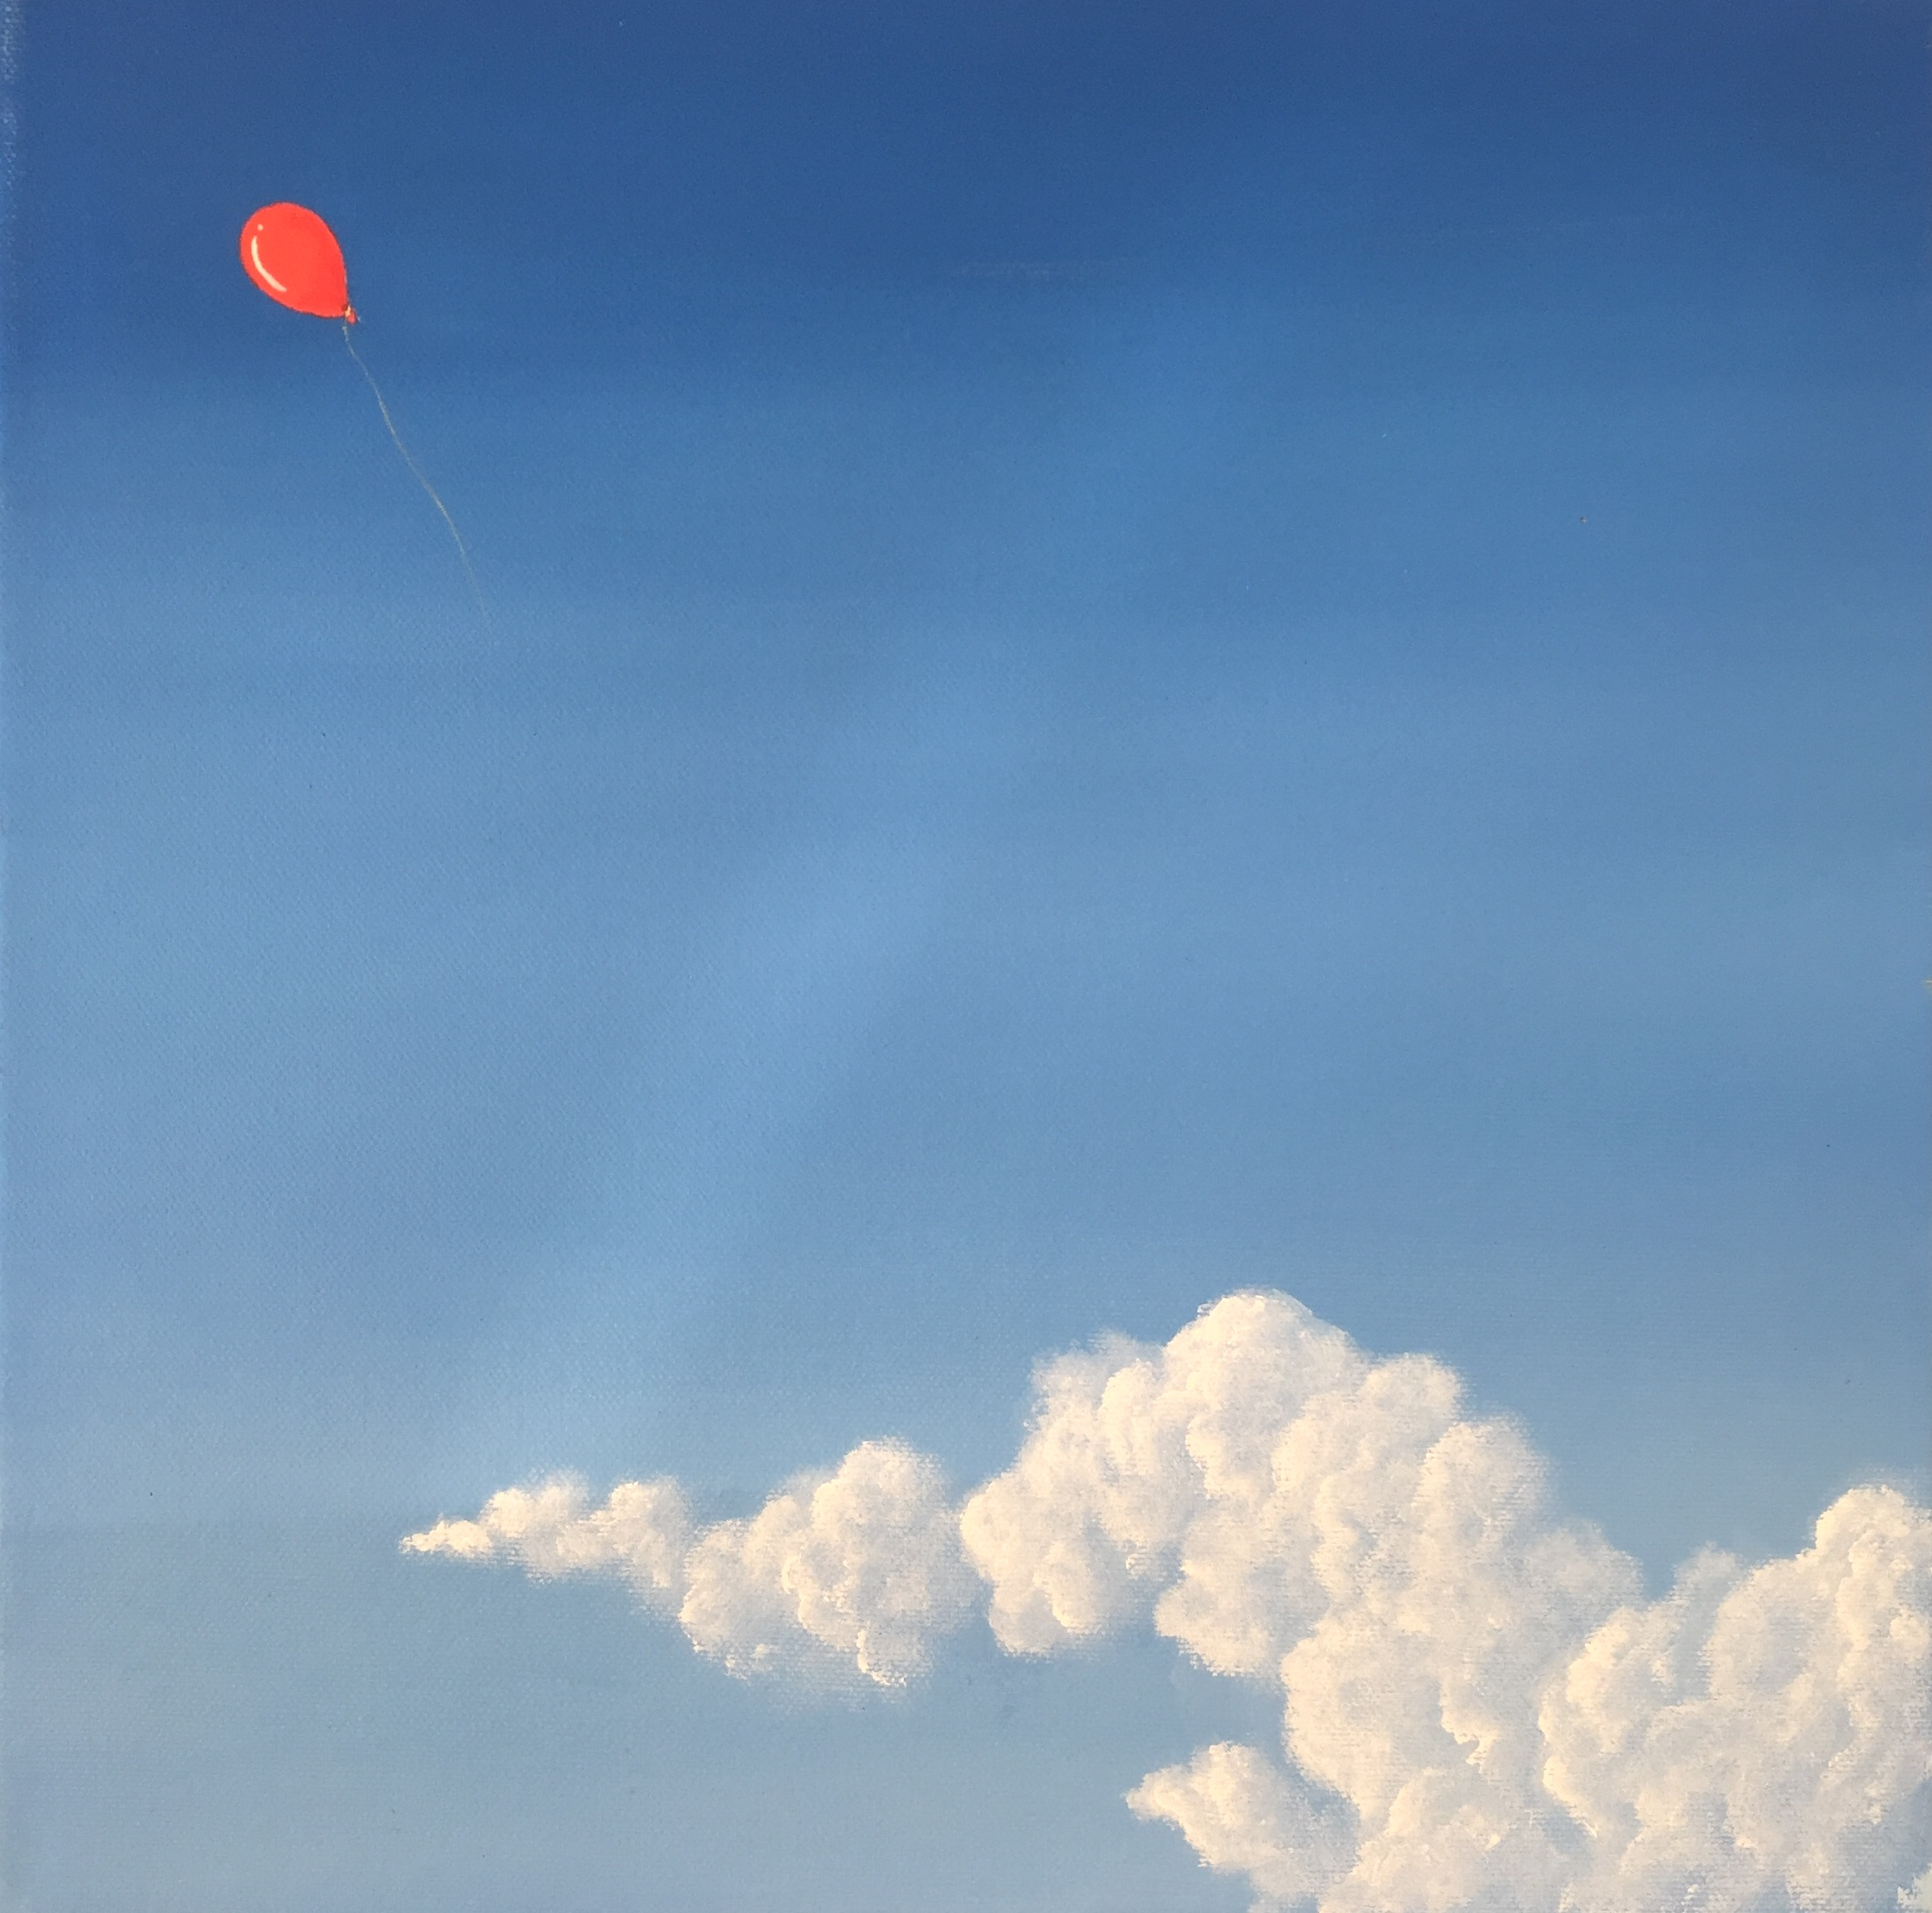 Ivor Cole's 'The Red Balloon'